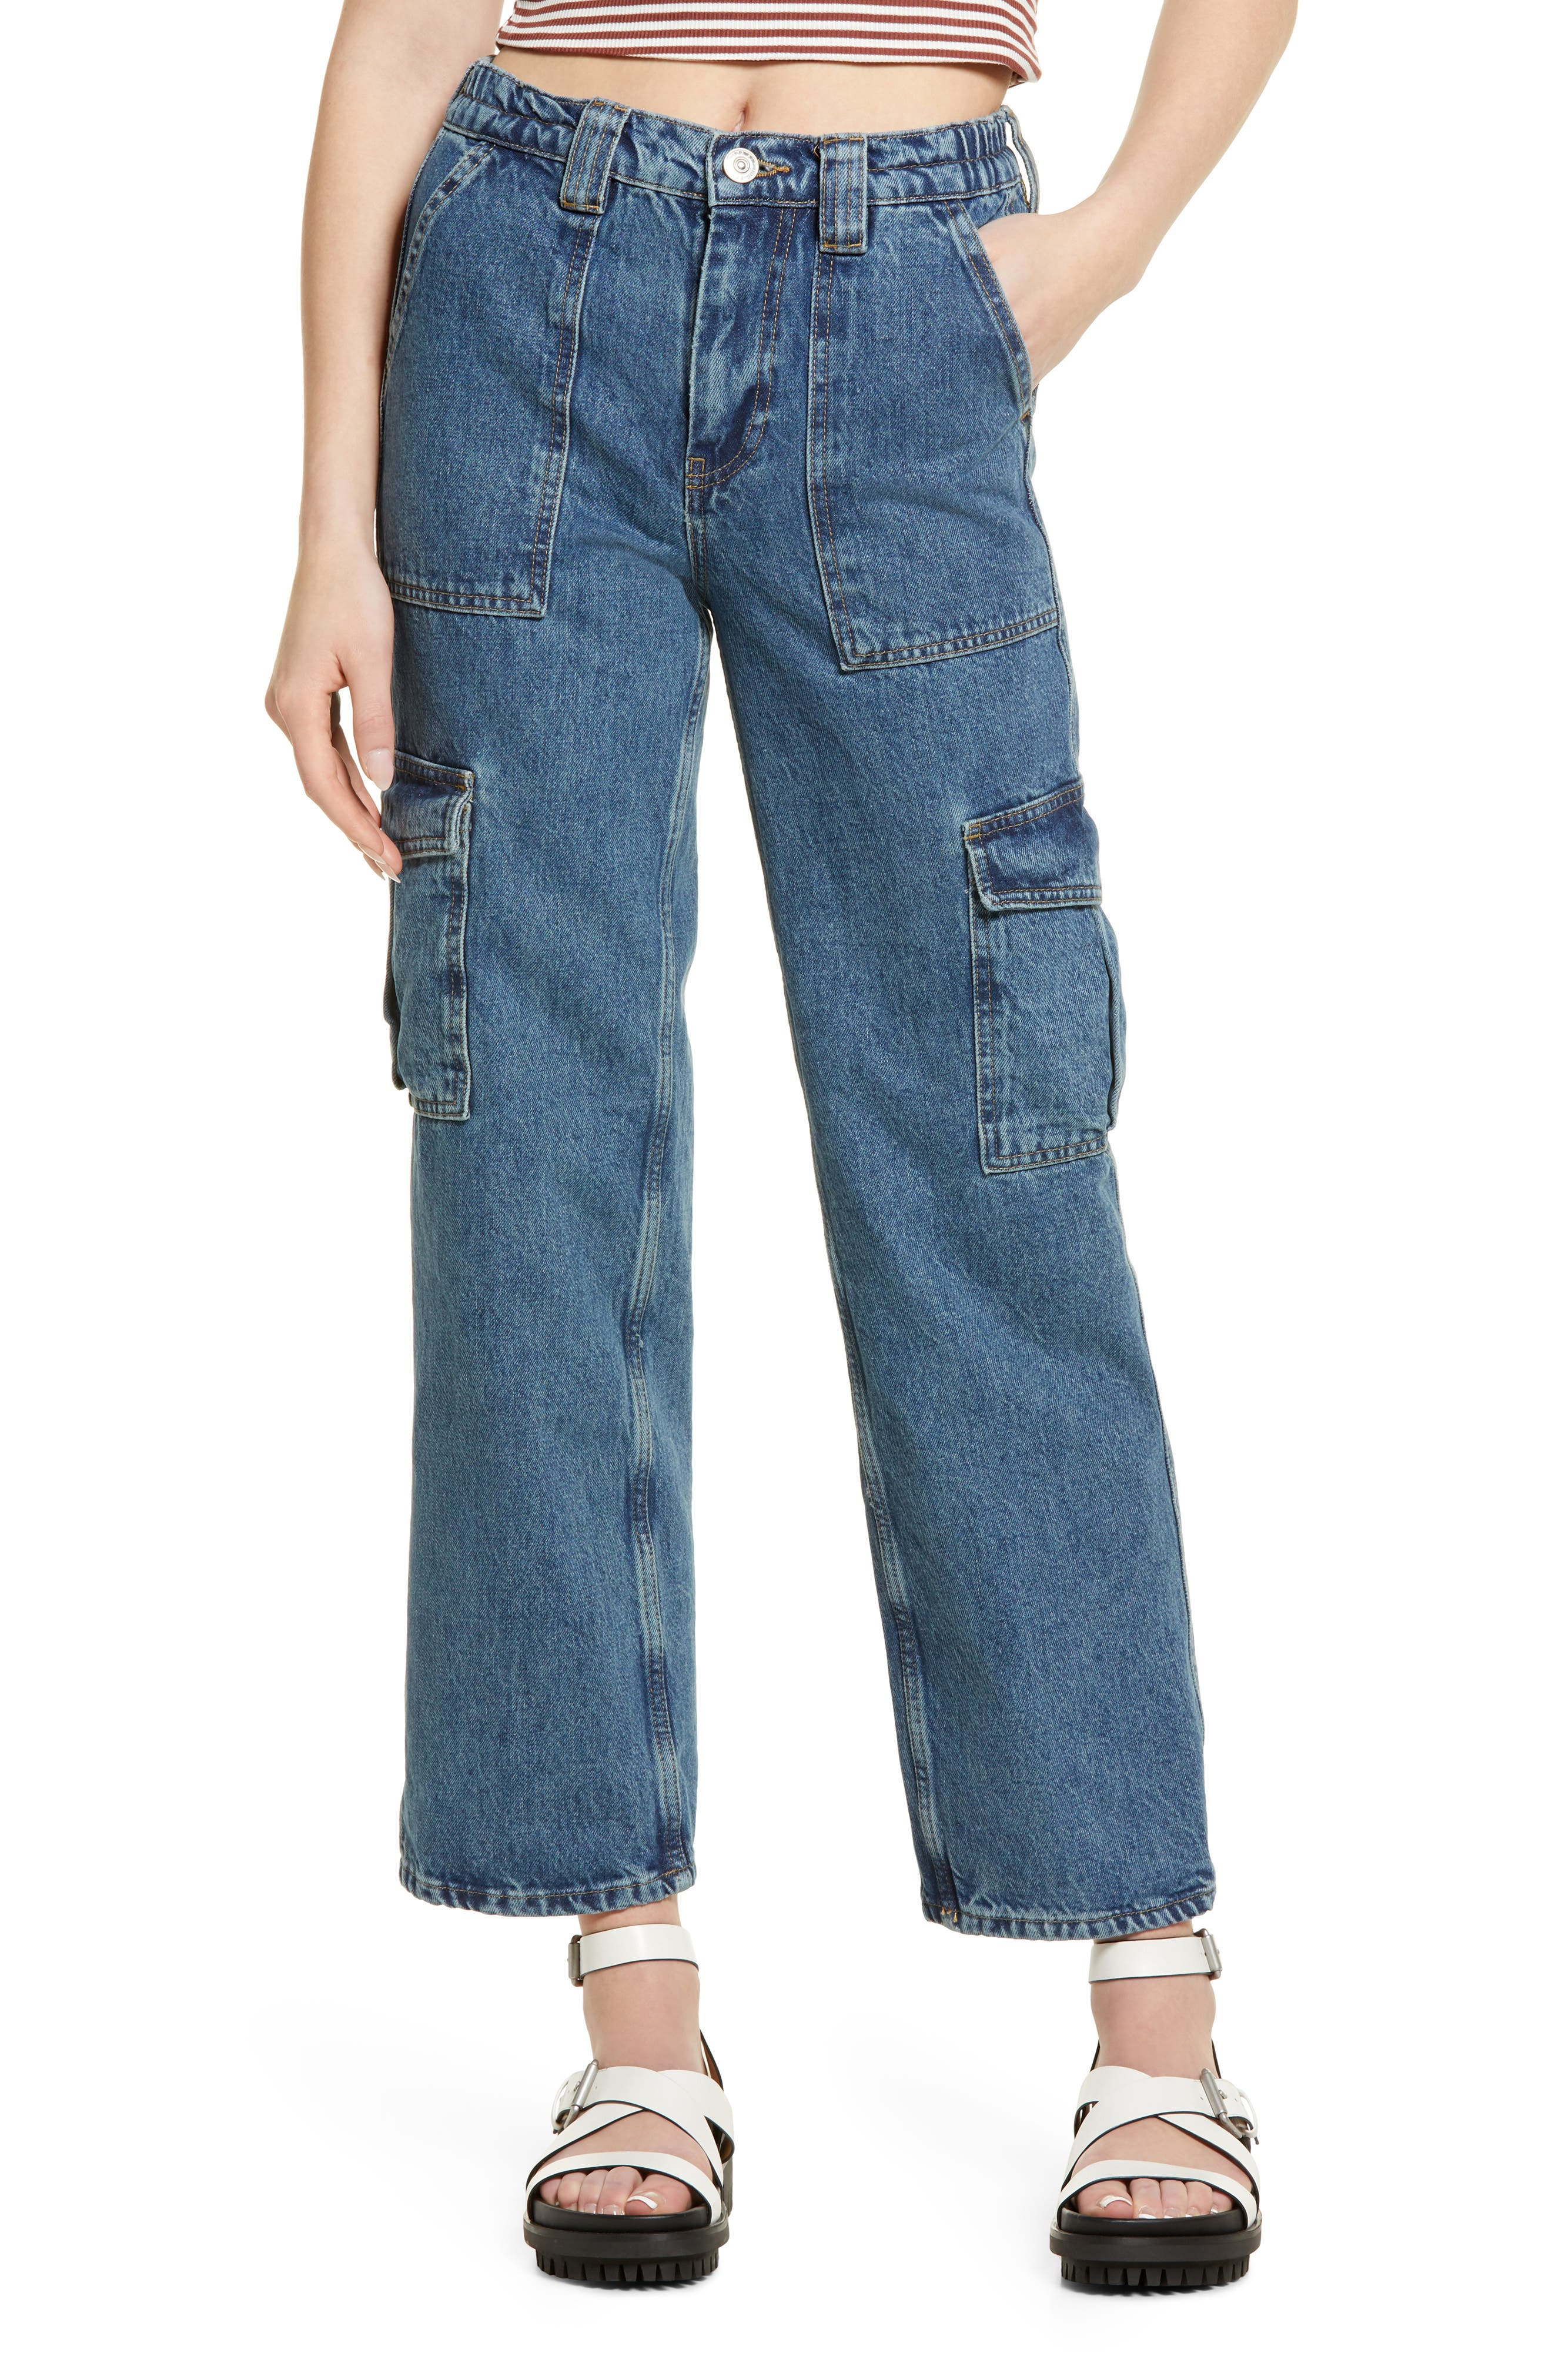 Nonstretch Skate Jeans